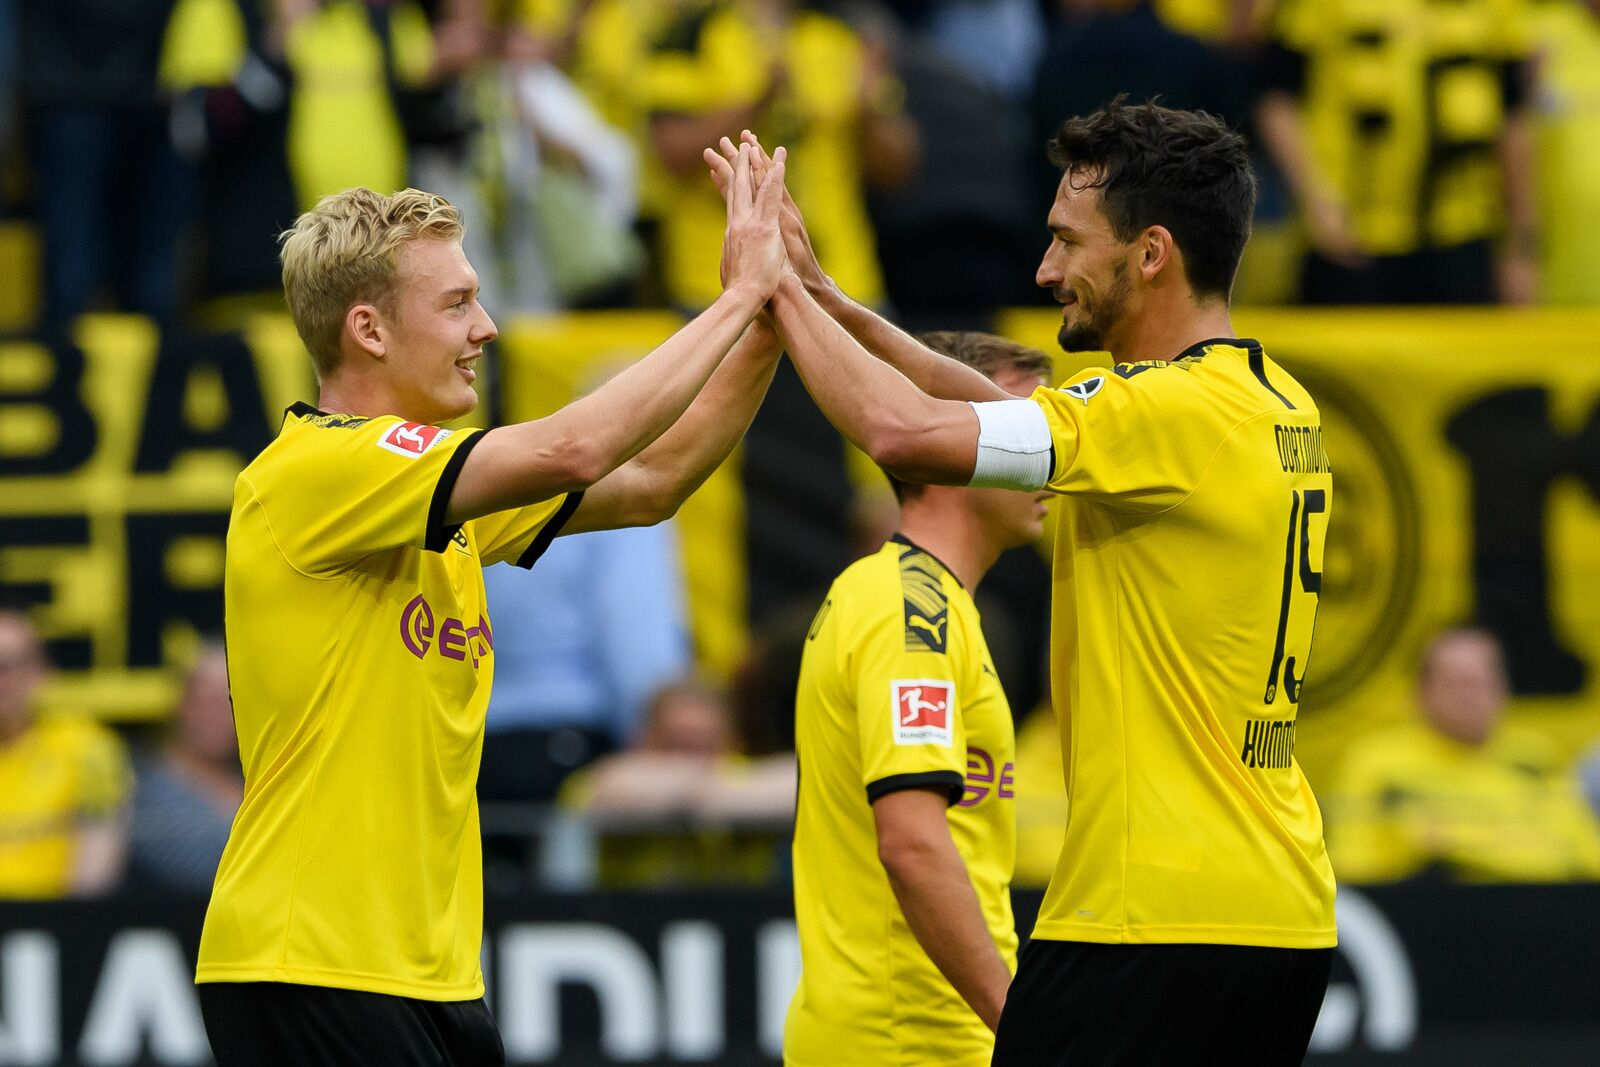 Borussia Dortmund still have many questions to answer